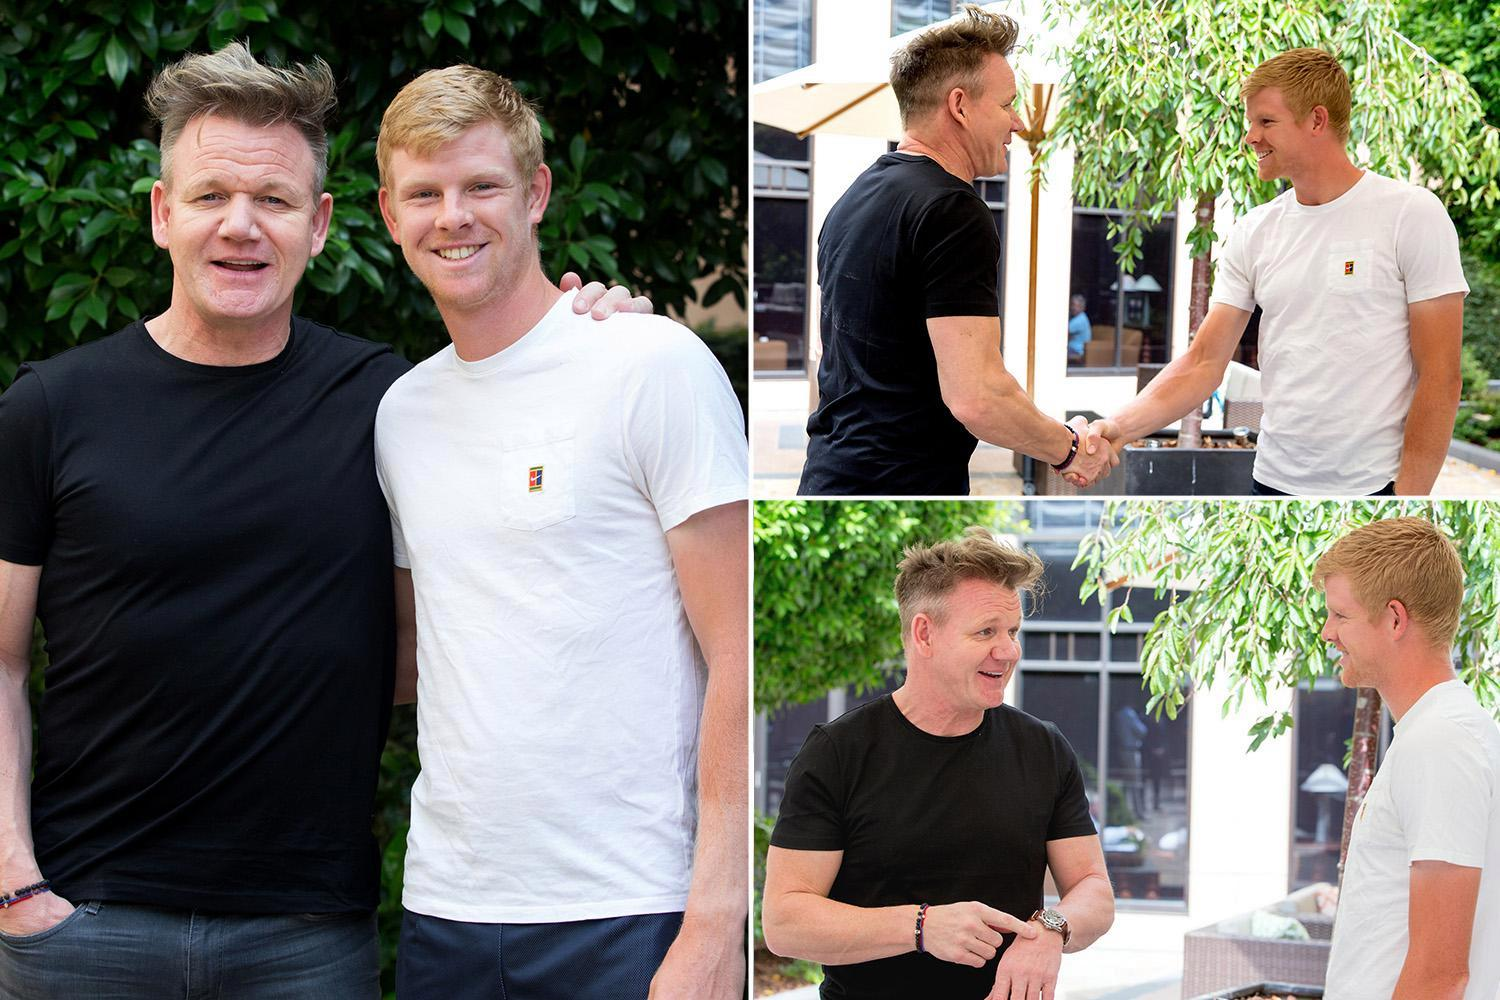 Australian Open 2018: Kyle Edmund promised slap-up meal by Gordon Ramsay if he beats Marin Cilic